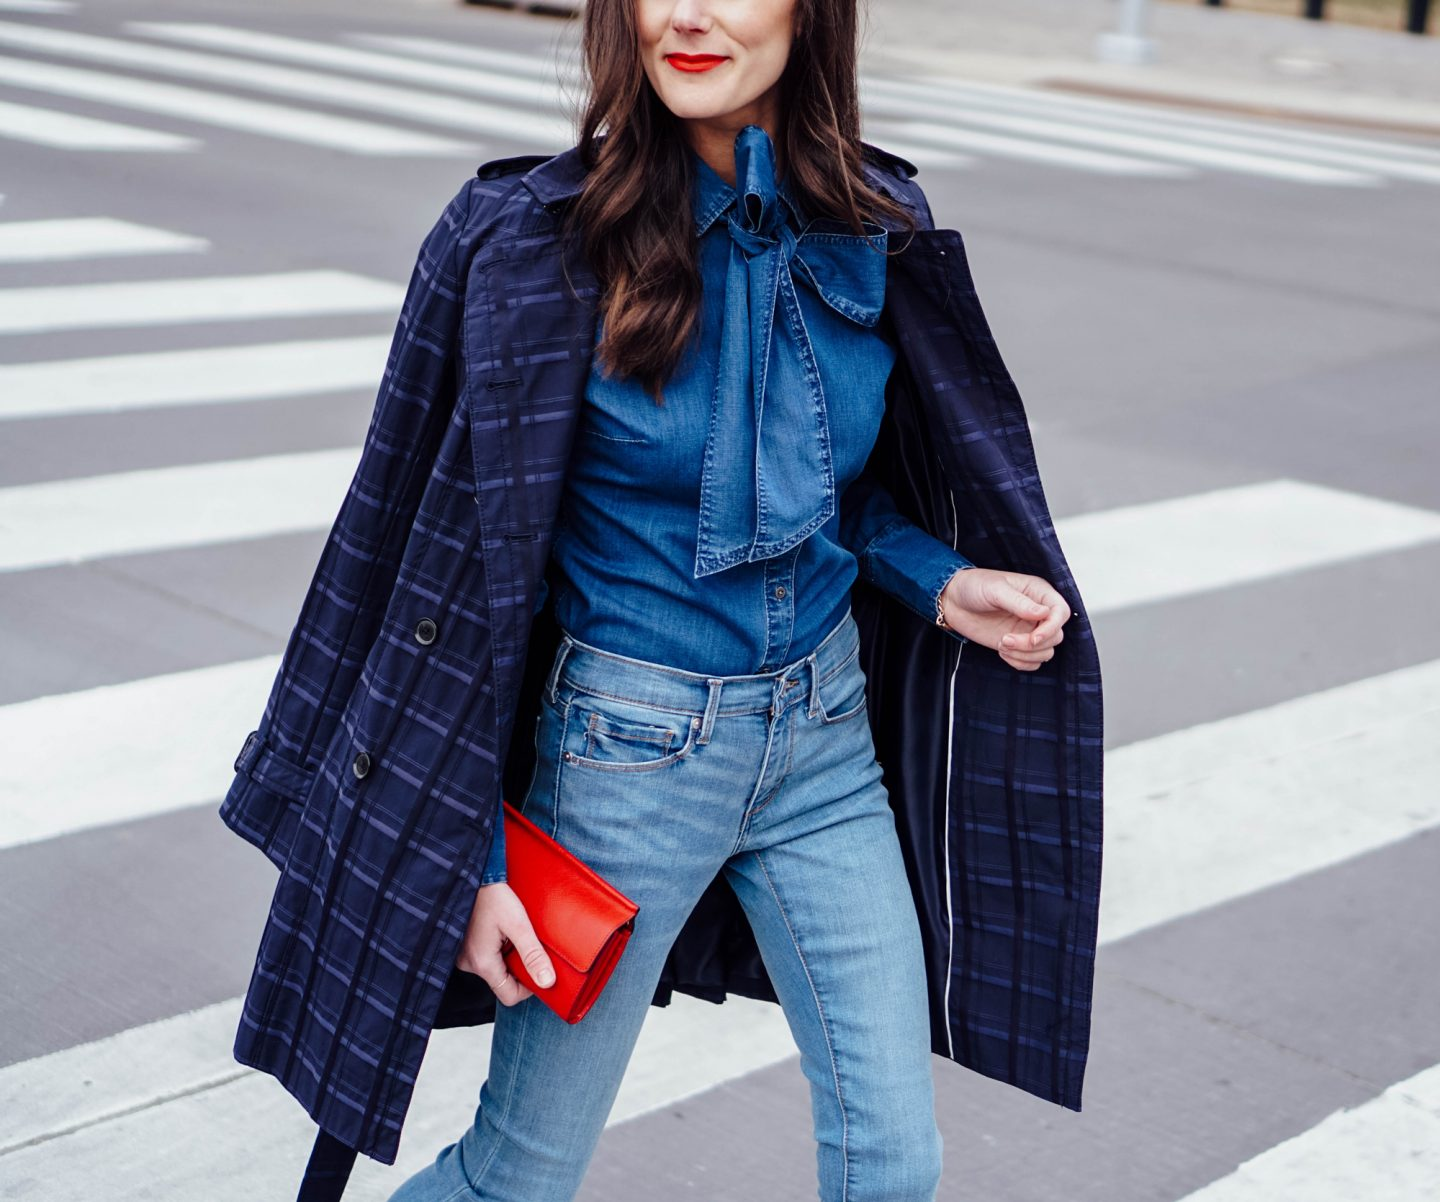 I'm over on TheDandyLiar.com talking about denim. I'm loving this new pair I bought from Banana Republic that has a frayed hem and fits in all the right places. I also paired it with a denim bow tie top and navy plaid trench coat.